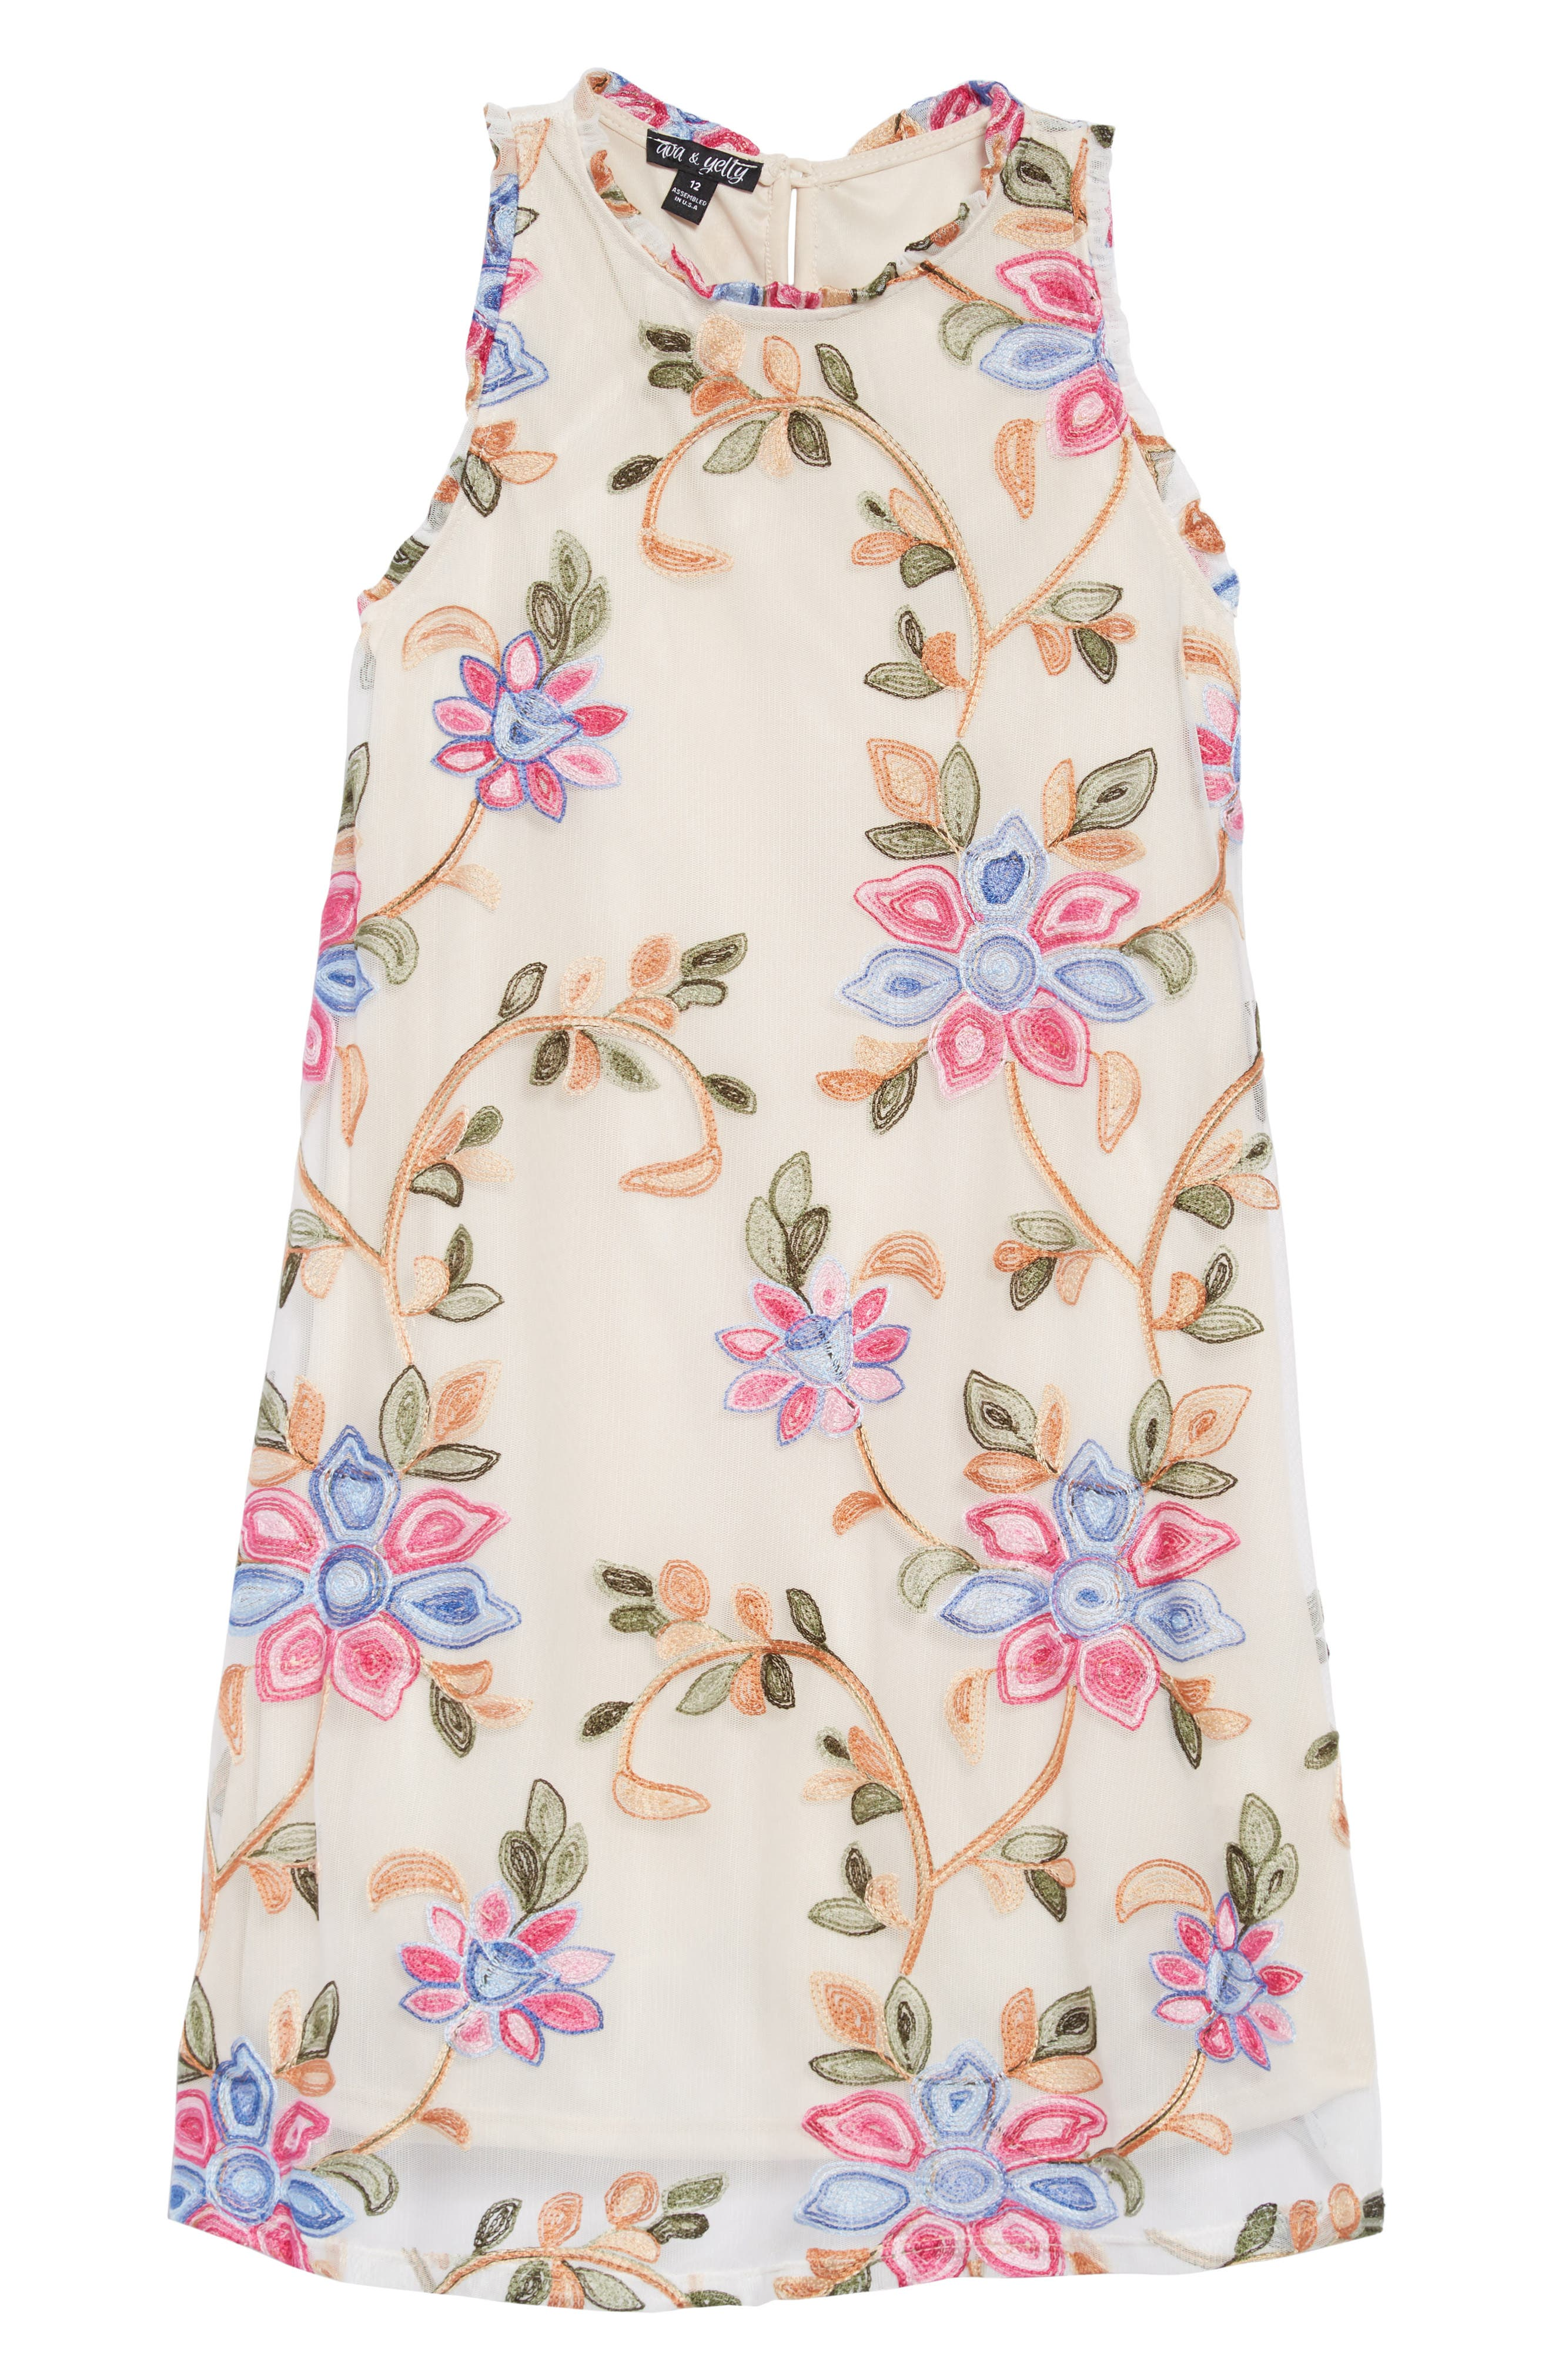 Floral Embroidered Shift Dress,                             Main thumbnail 1, color,                             400